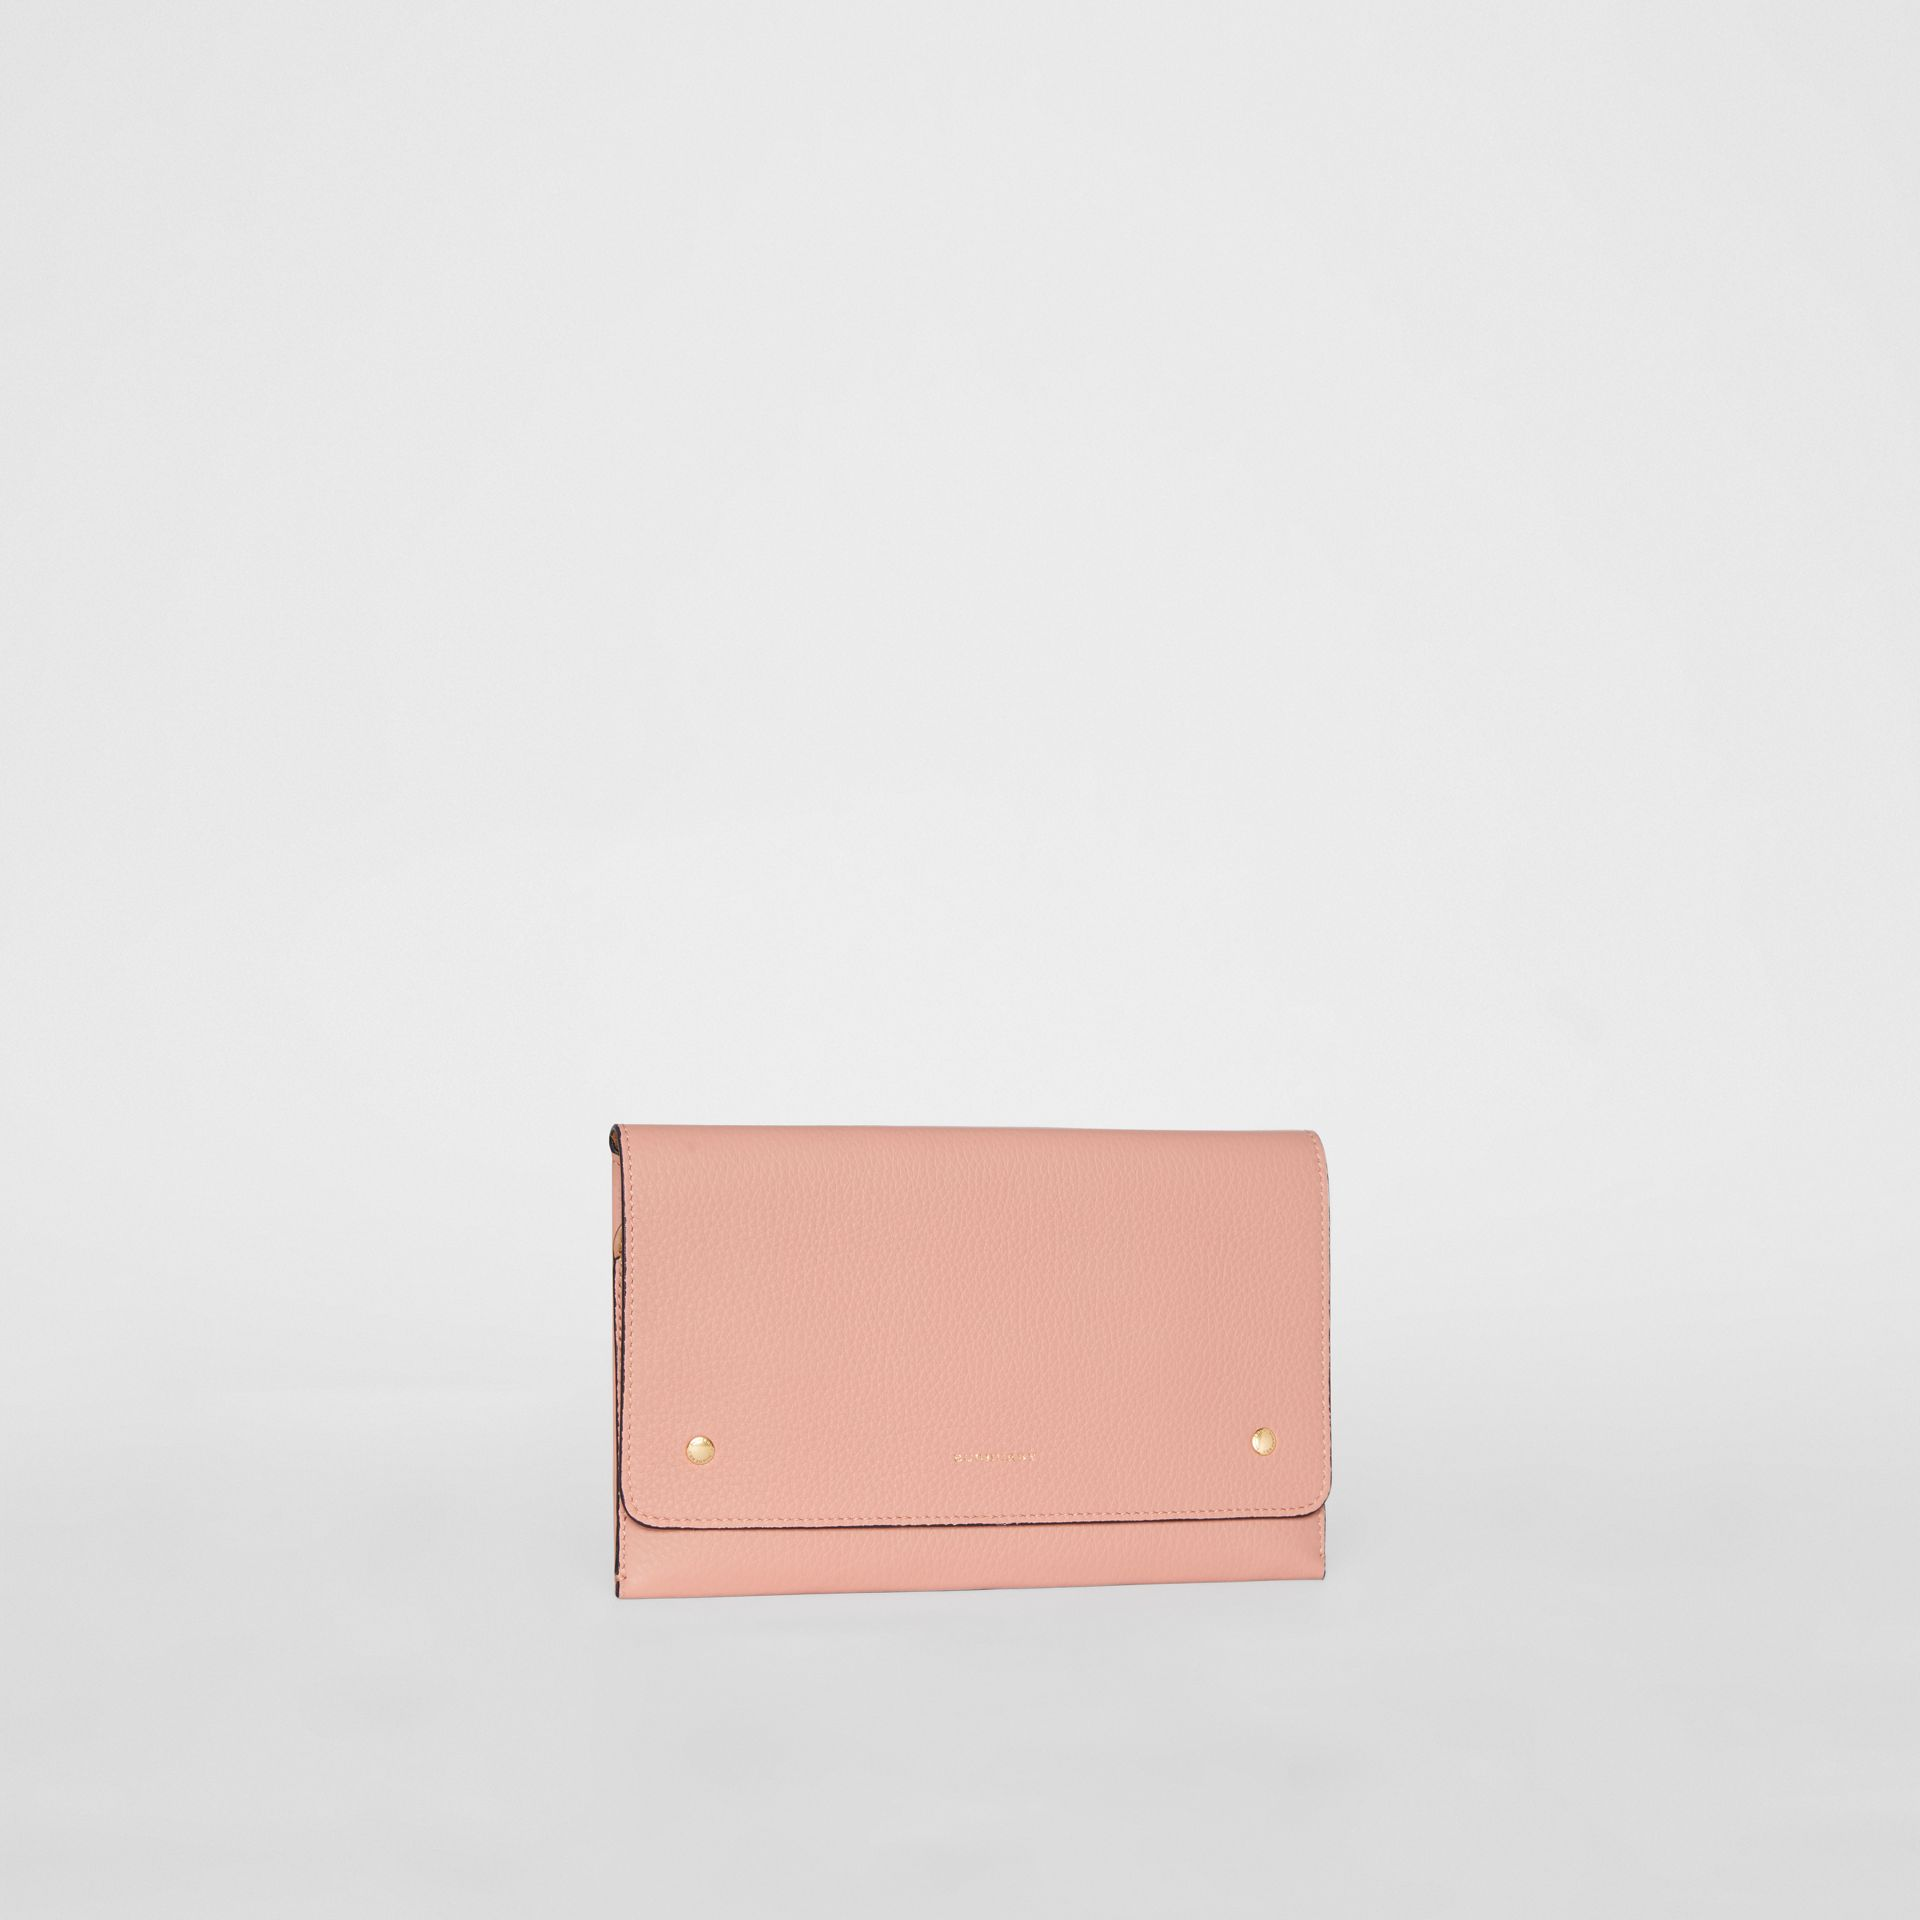 Two-tone Leather Wristlet Clutch in Ash Rose - Women | Burberry United Kingdom - gallery image 5